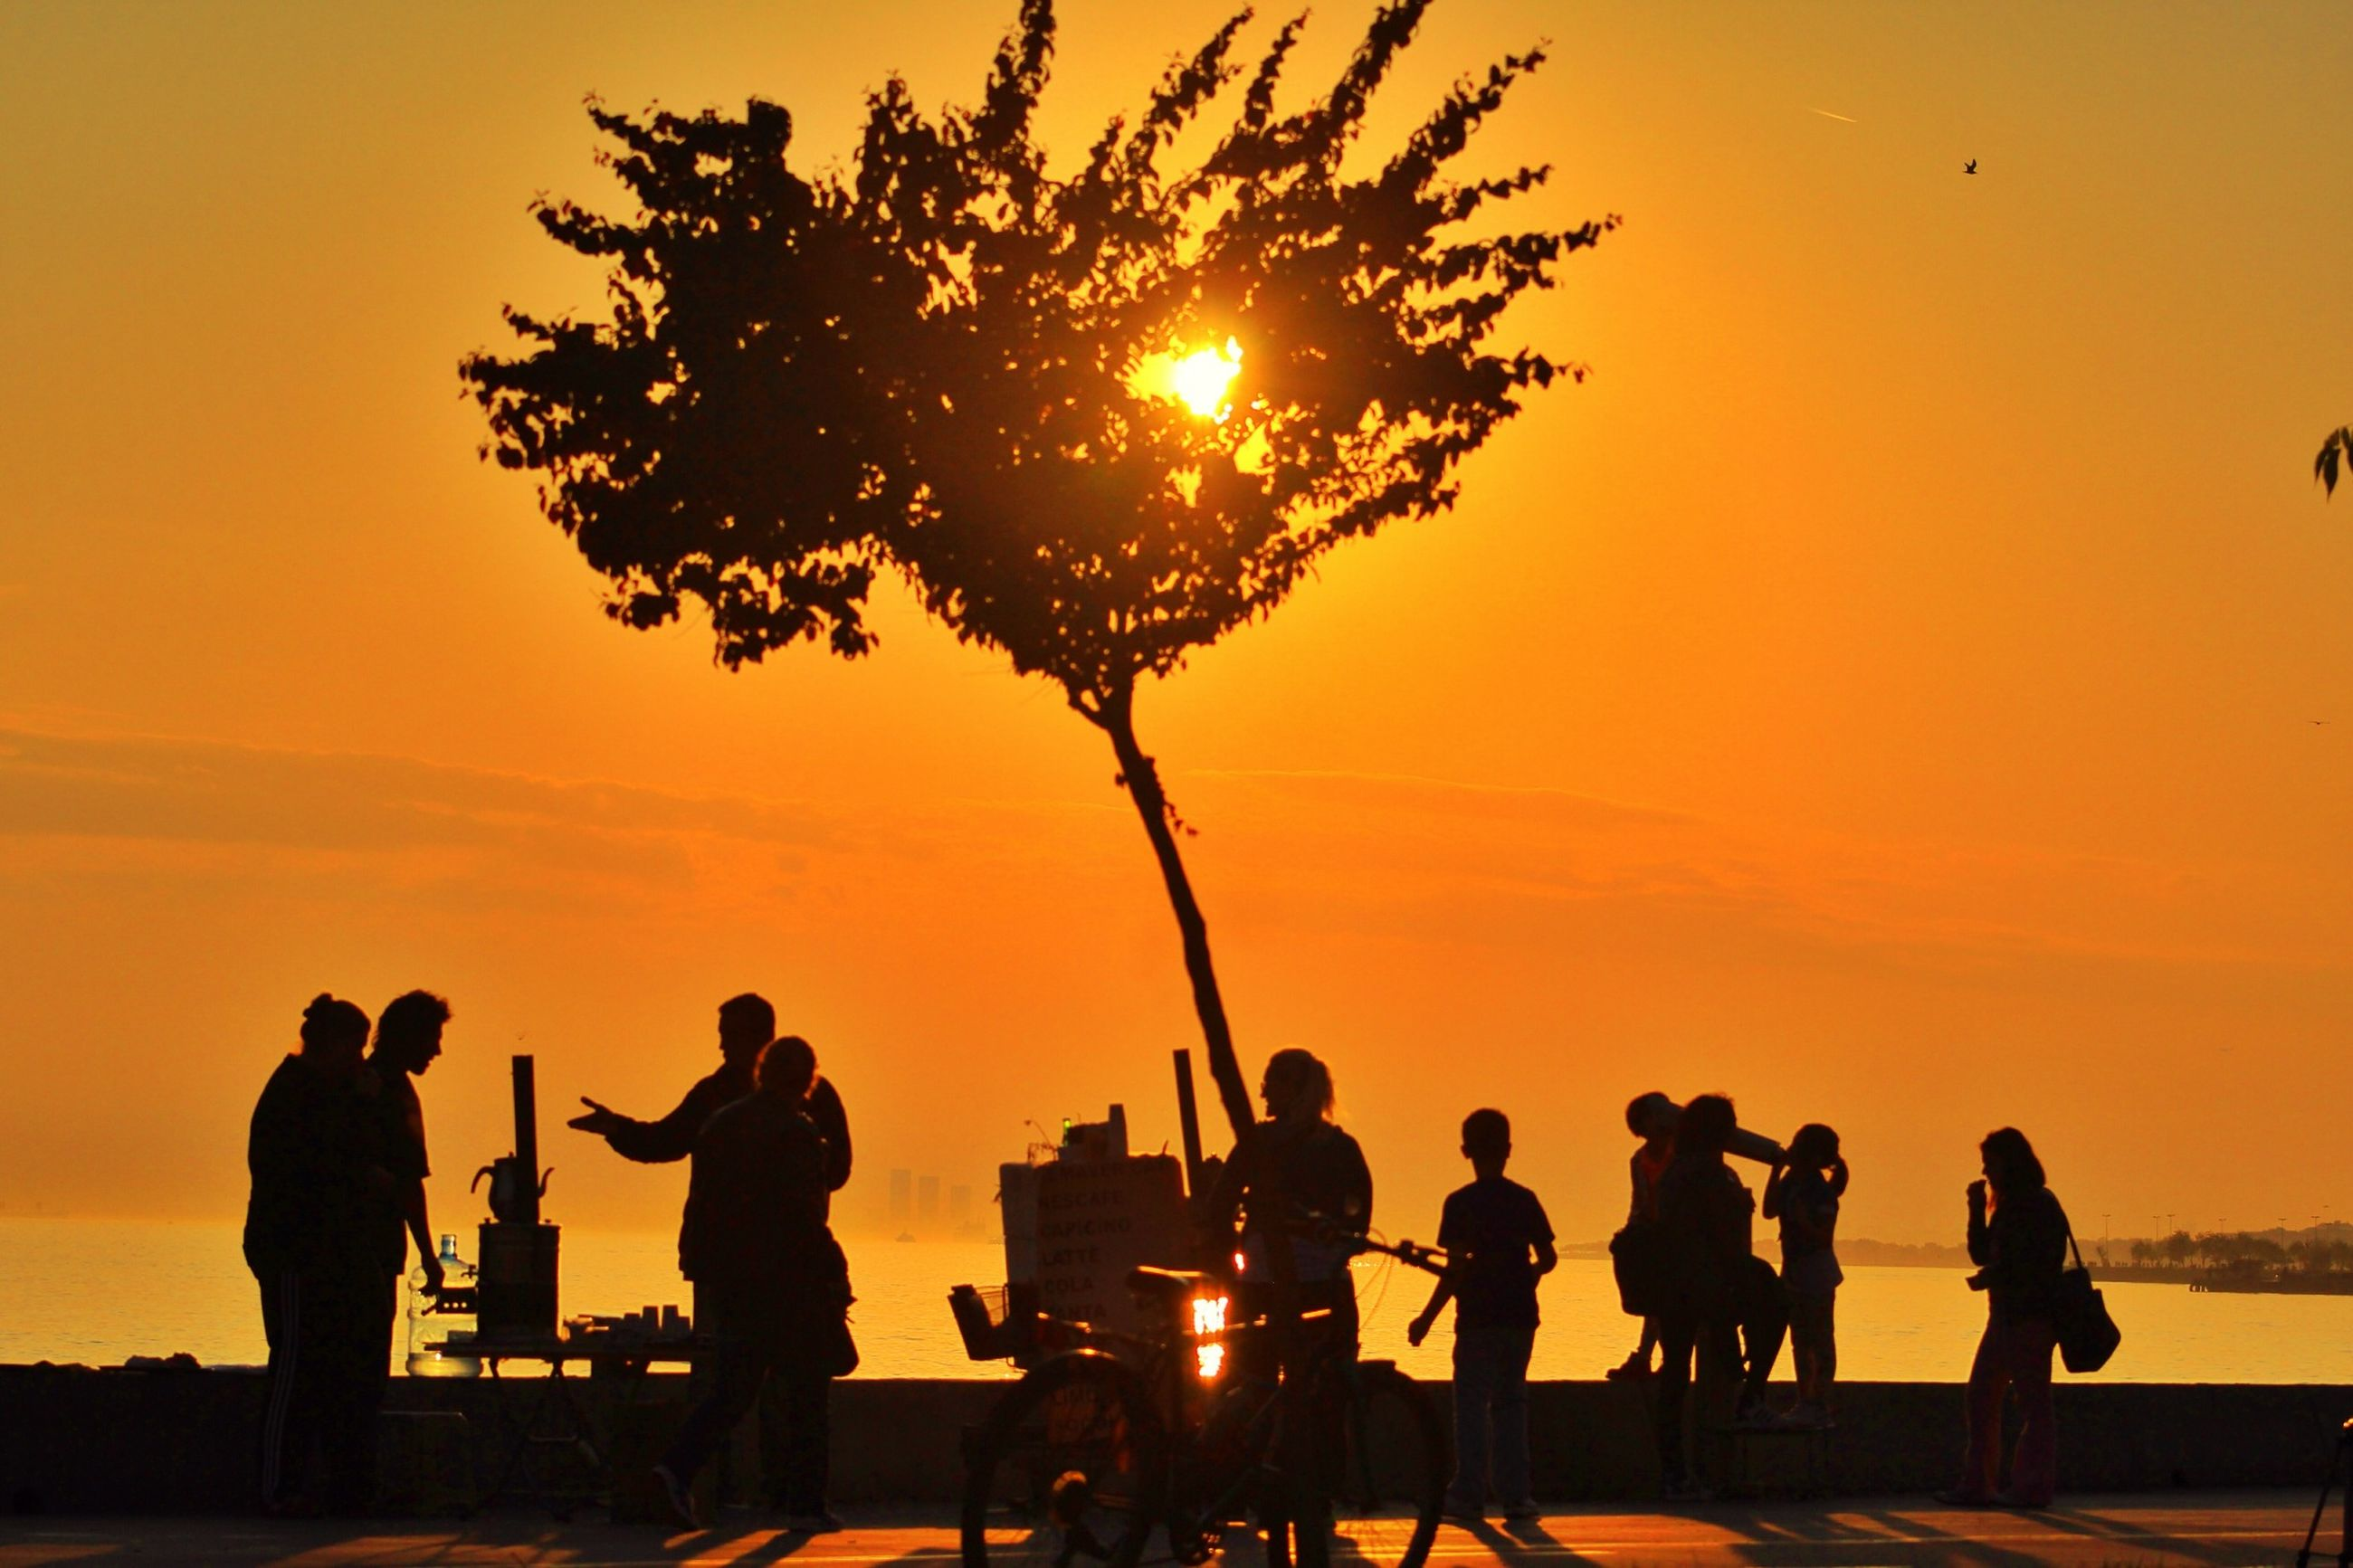 sunset, silhouette, men, orange color, lifestyles, leisure activity, large group of people, person, sun, sky, togetherness, medium group of people, tree, enjoyment, sea, mixed age range, nature, outdoors, sunlight